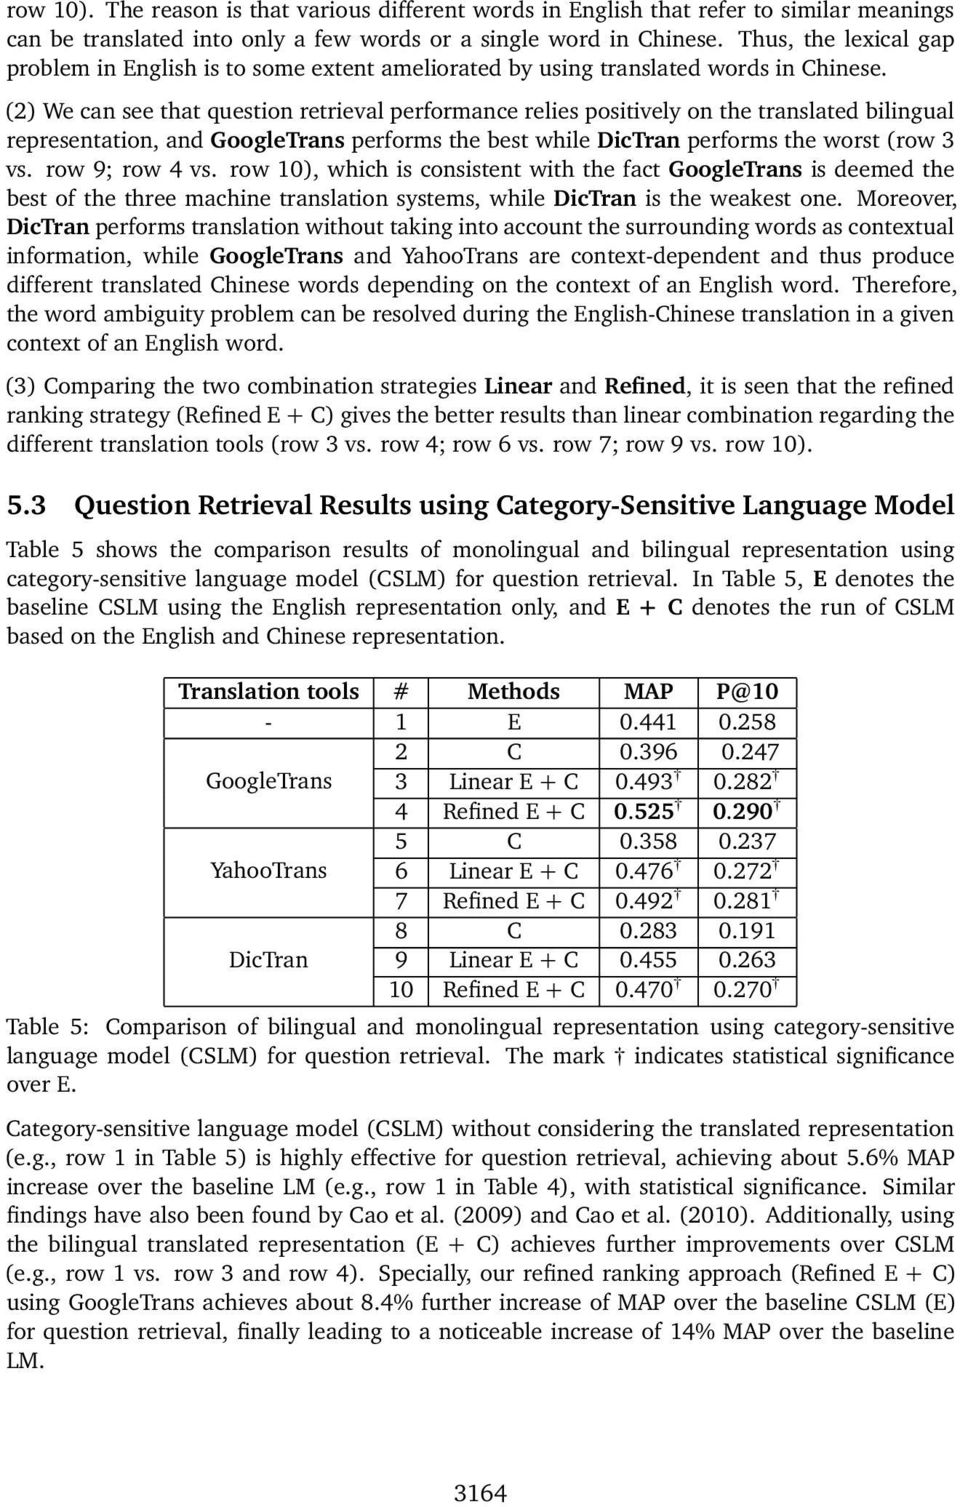 (2) We can see that question retrieval performance relies positively on the translated bilingual representation, and GoogleTrans performs the best while DicTran performs the worst (row 3 vs.